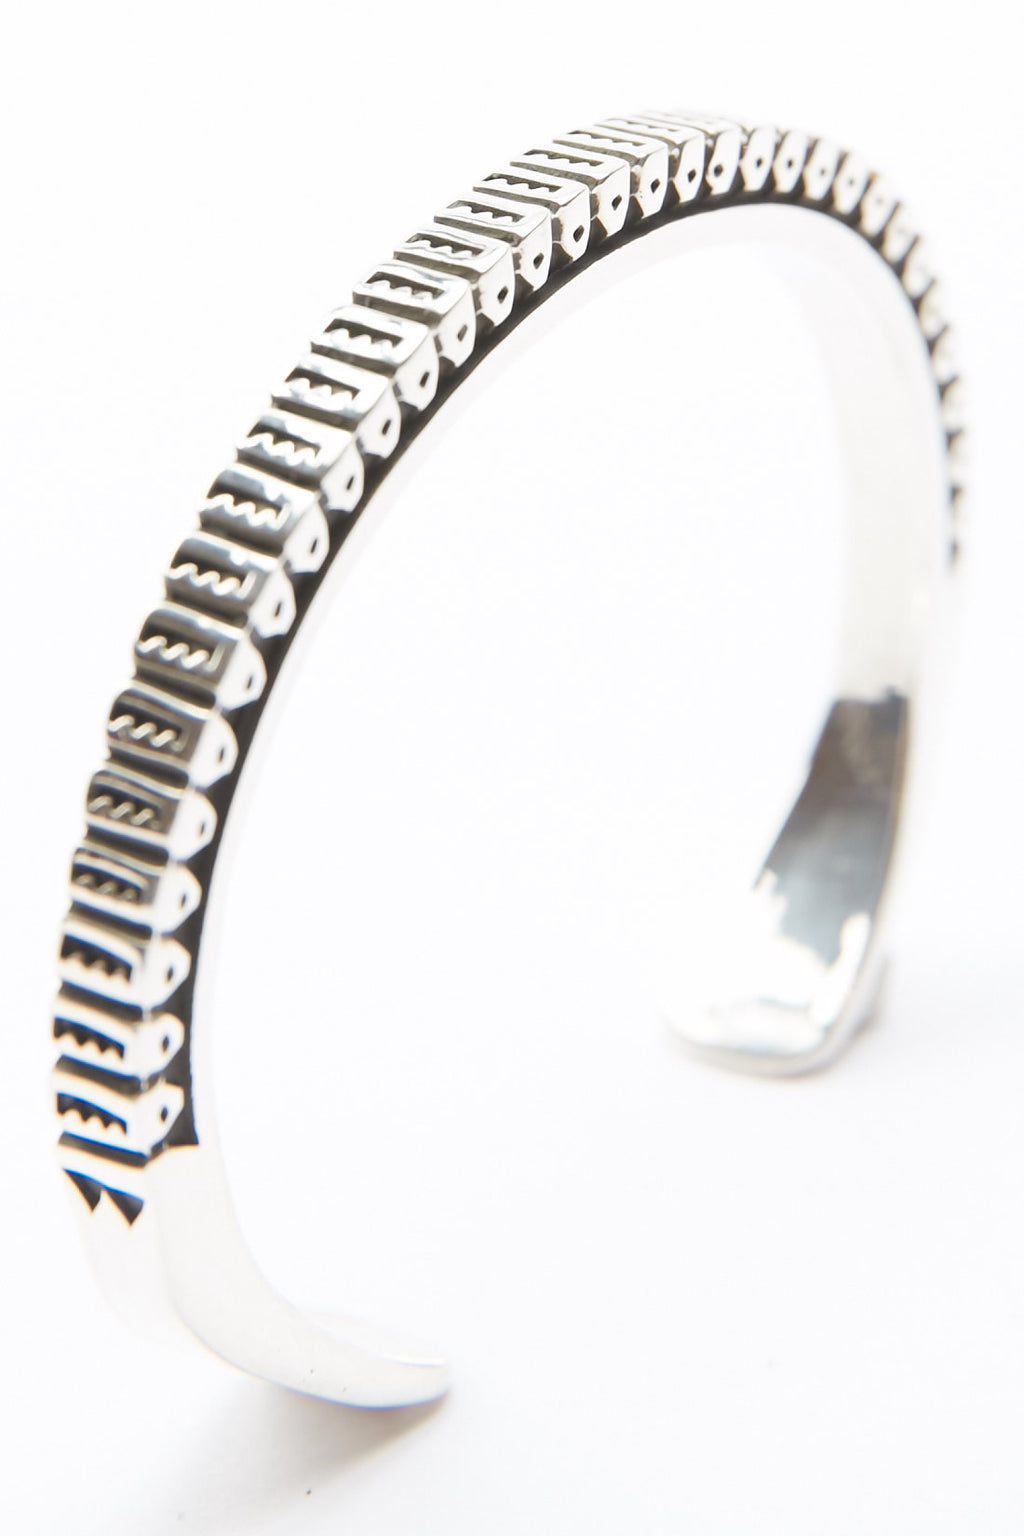 Sterling Silver Square Cuff by Lyle Secatero - Protection Cuff